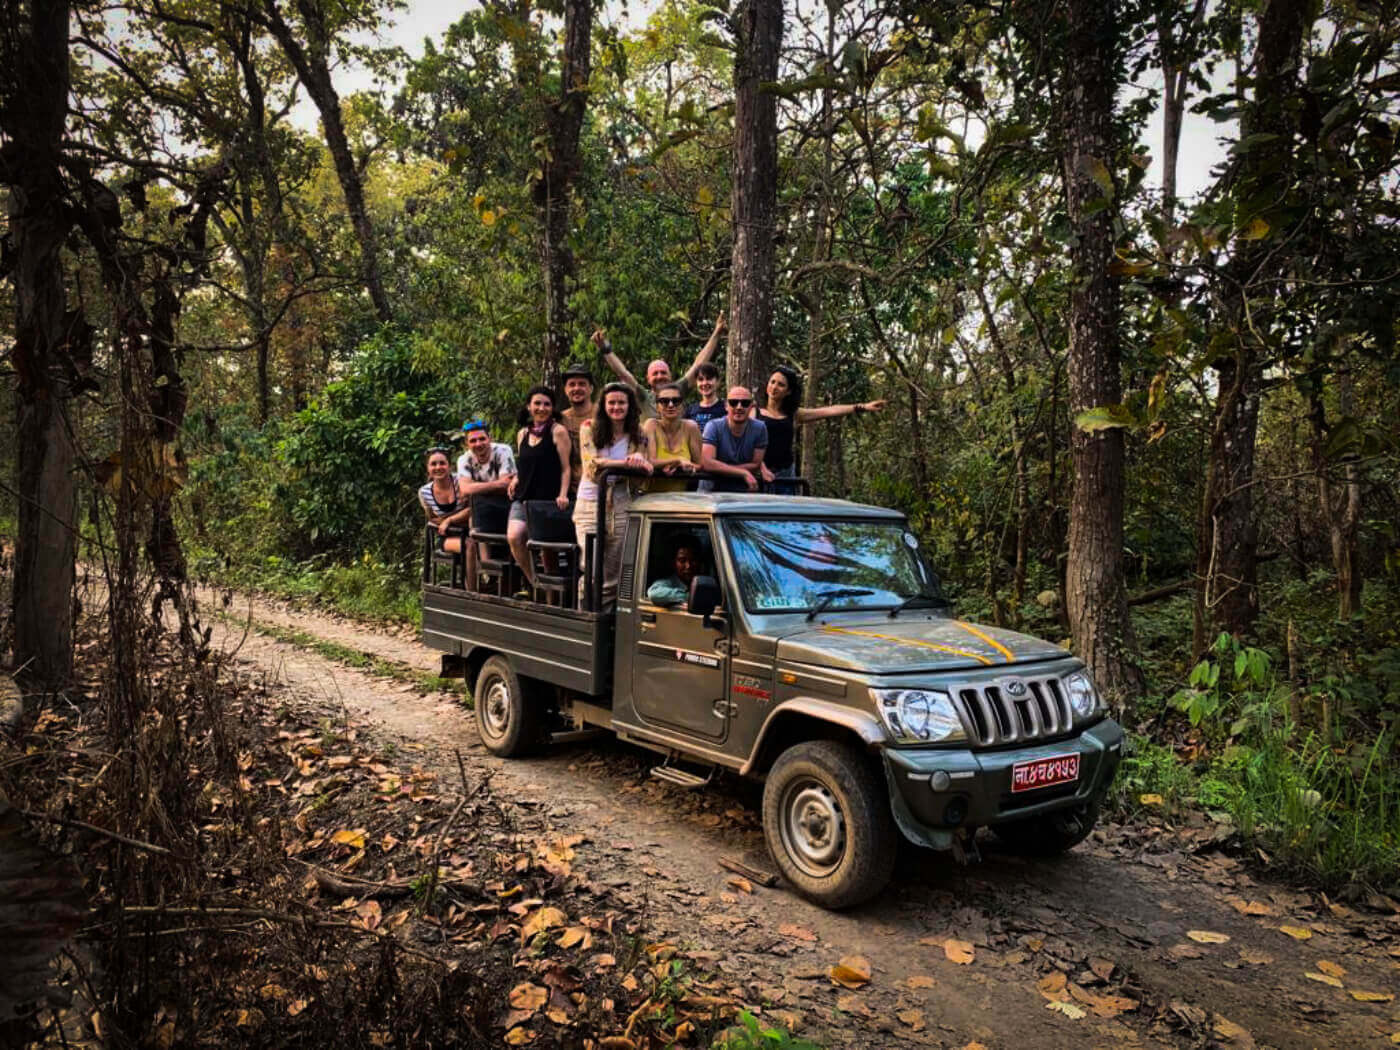 Tourist group in jeep